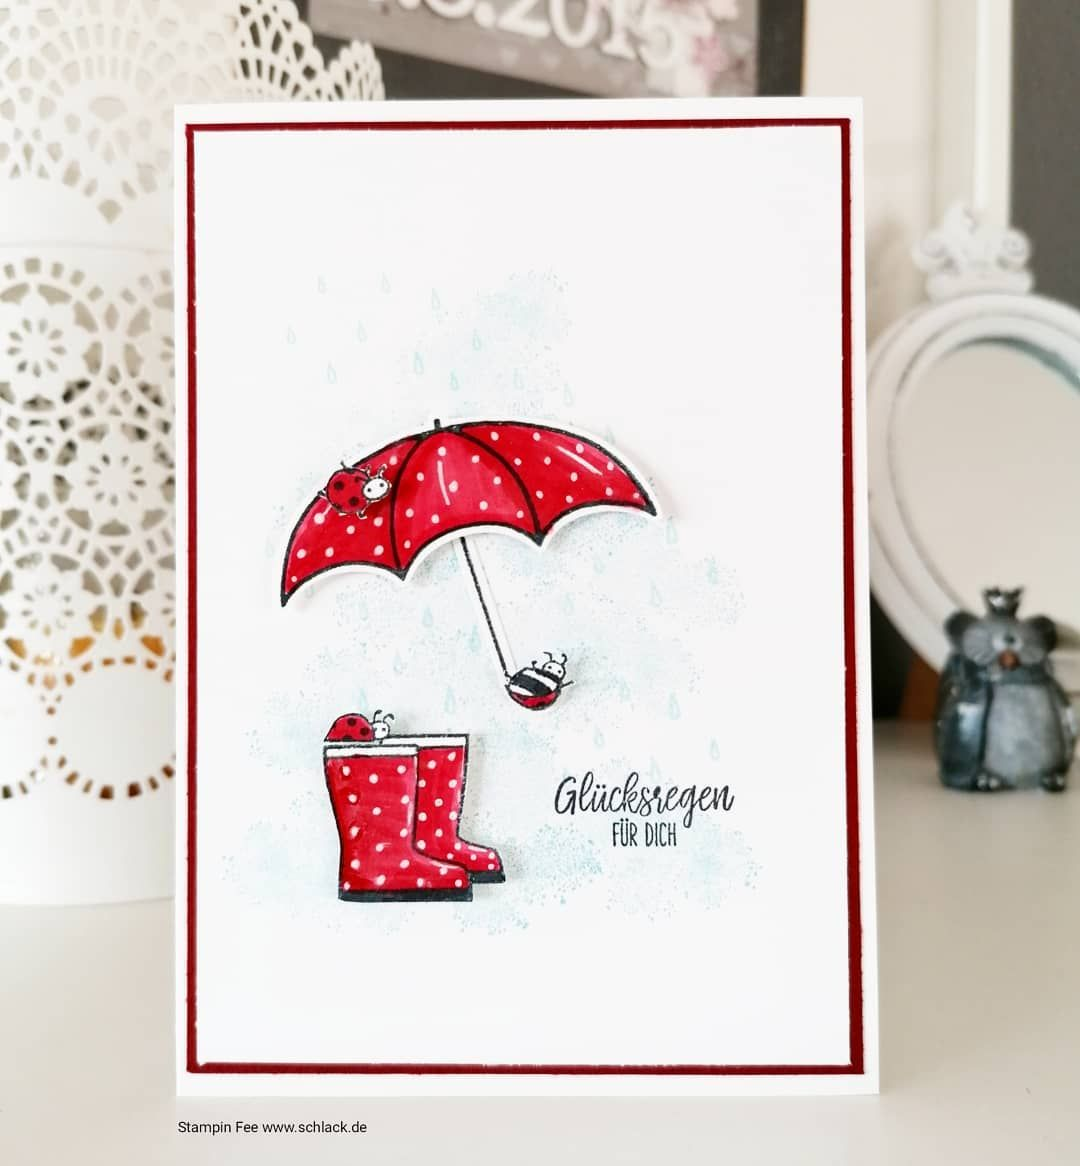 Stampin Fee Nicole Schlack On Instagram Werbung Ok Es War Ein Bißchen Fummelig Aber Ich Finde Es Hat In 2020 Umbrella Cards Stampin Up Cards Under My Umbrella